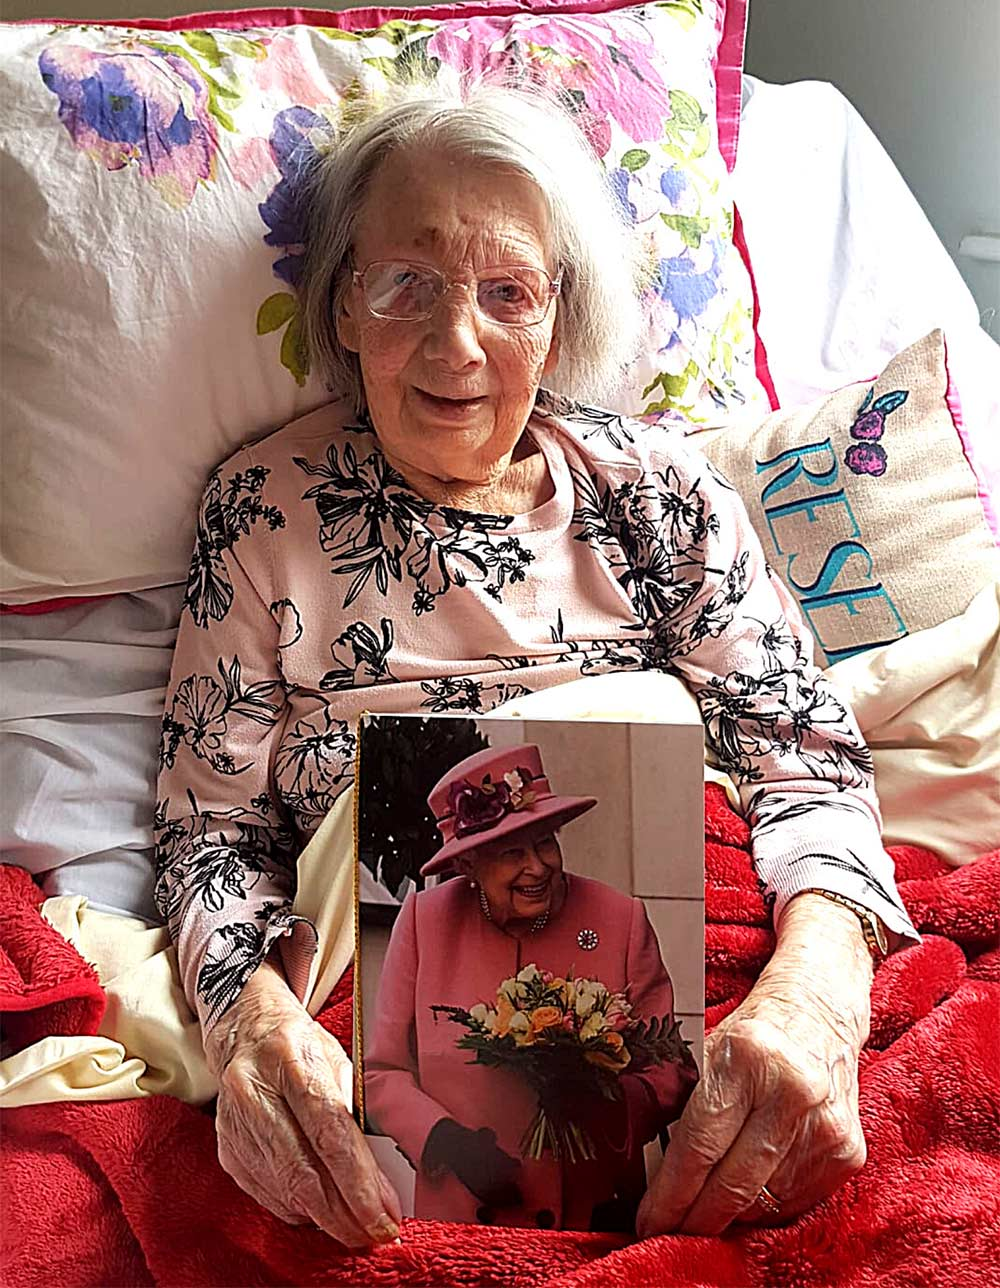 Our inspirational resident Grace shared her amazing life story